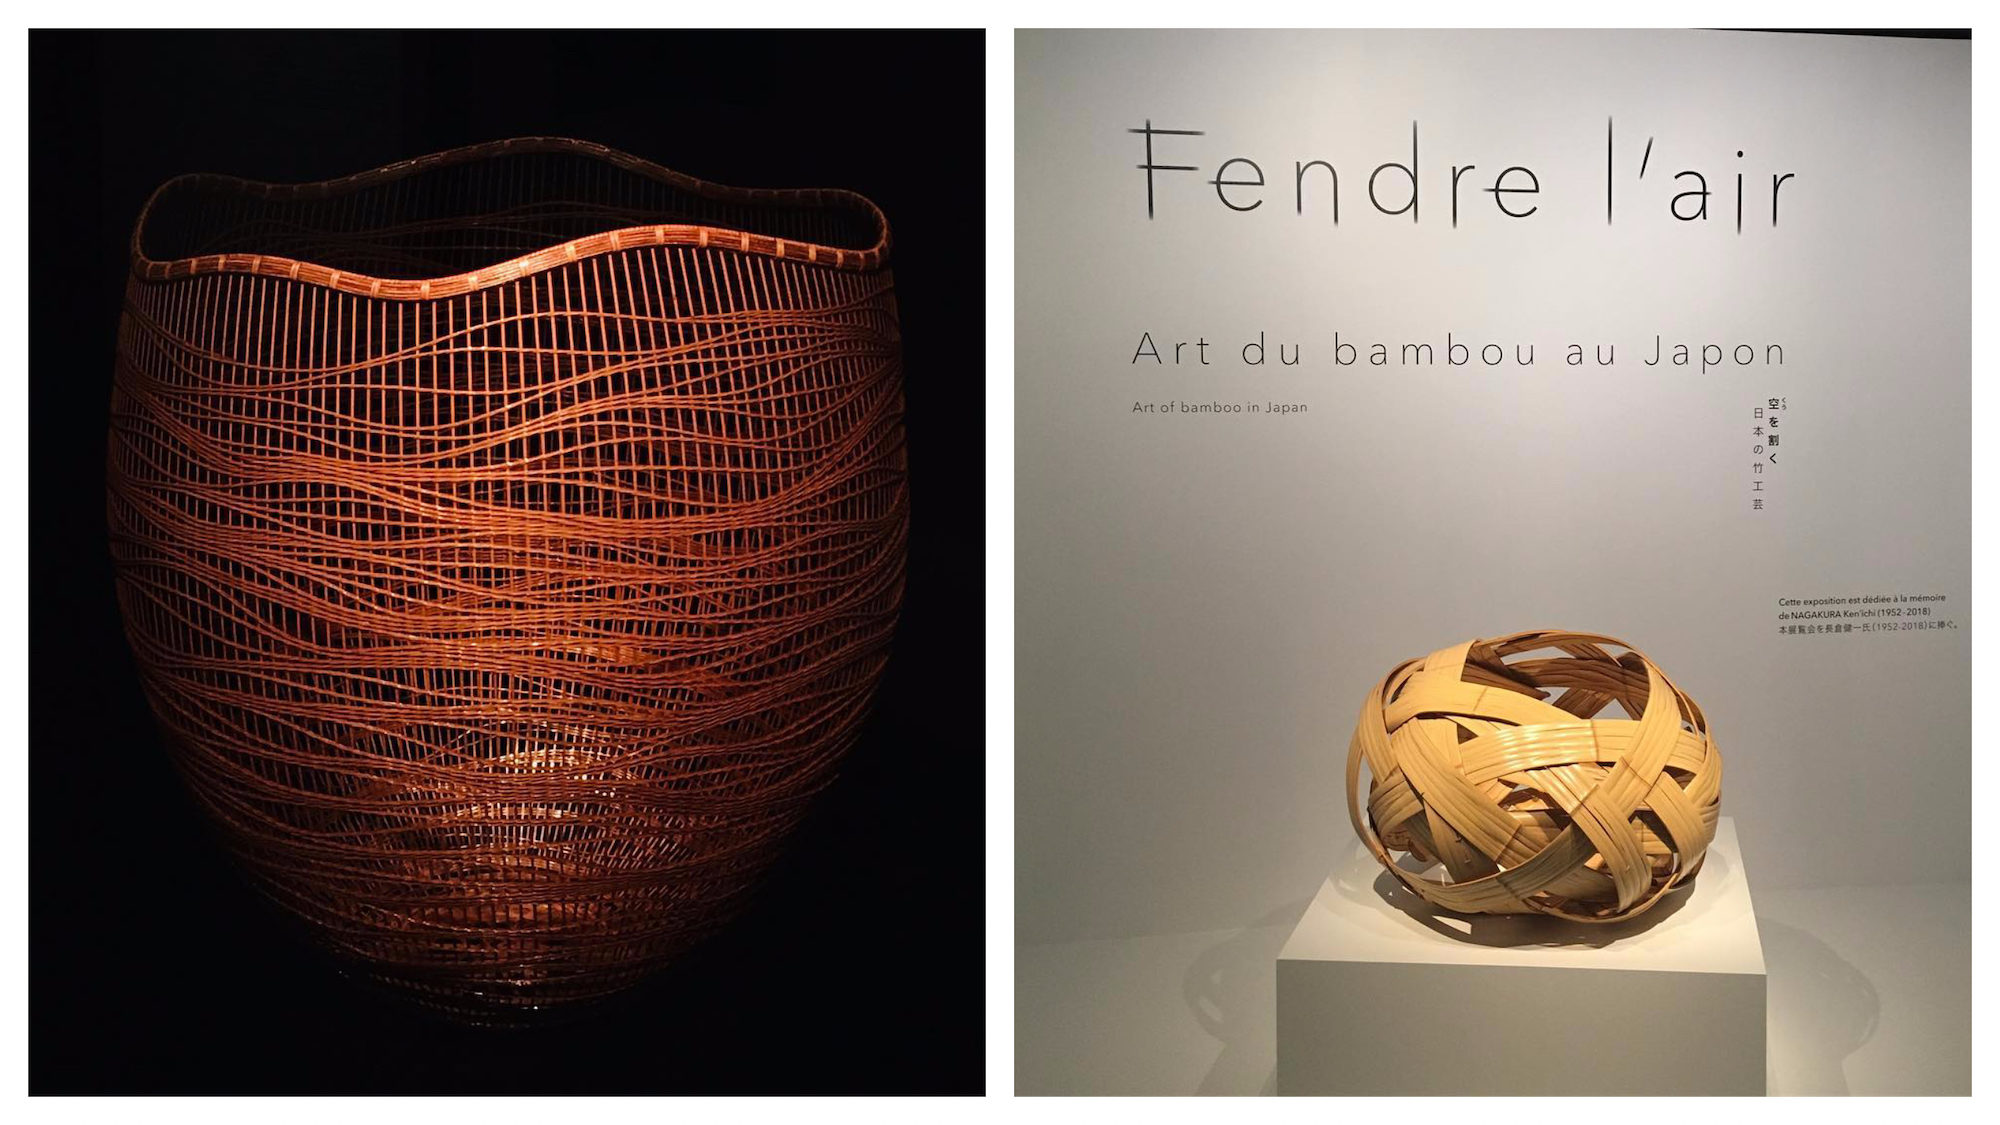 Exhibits at the Japanese Bamboo Art show at Paris' Musée Quai de Branly